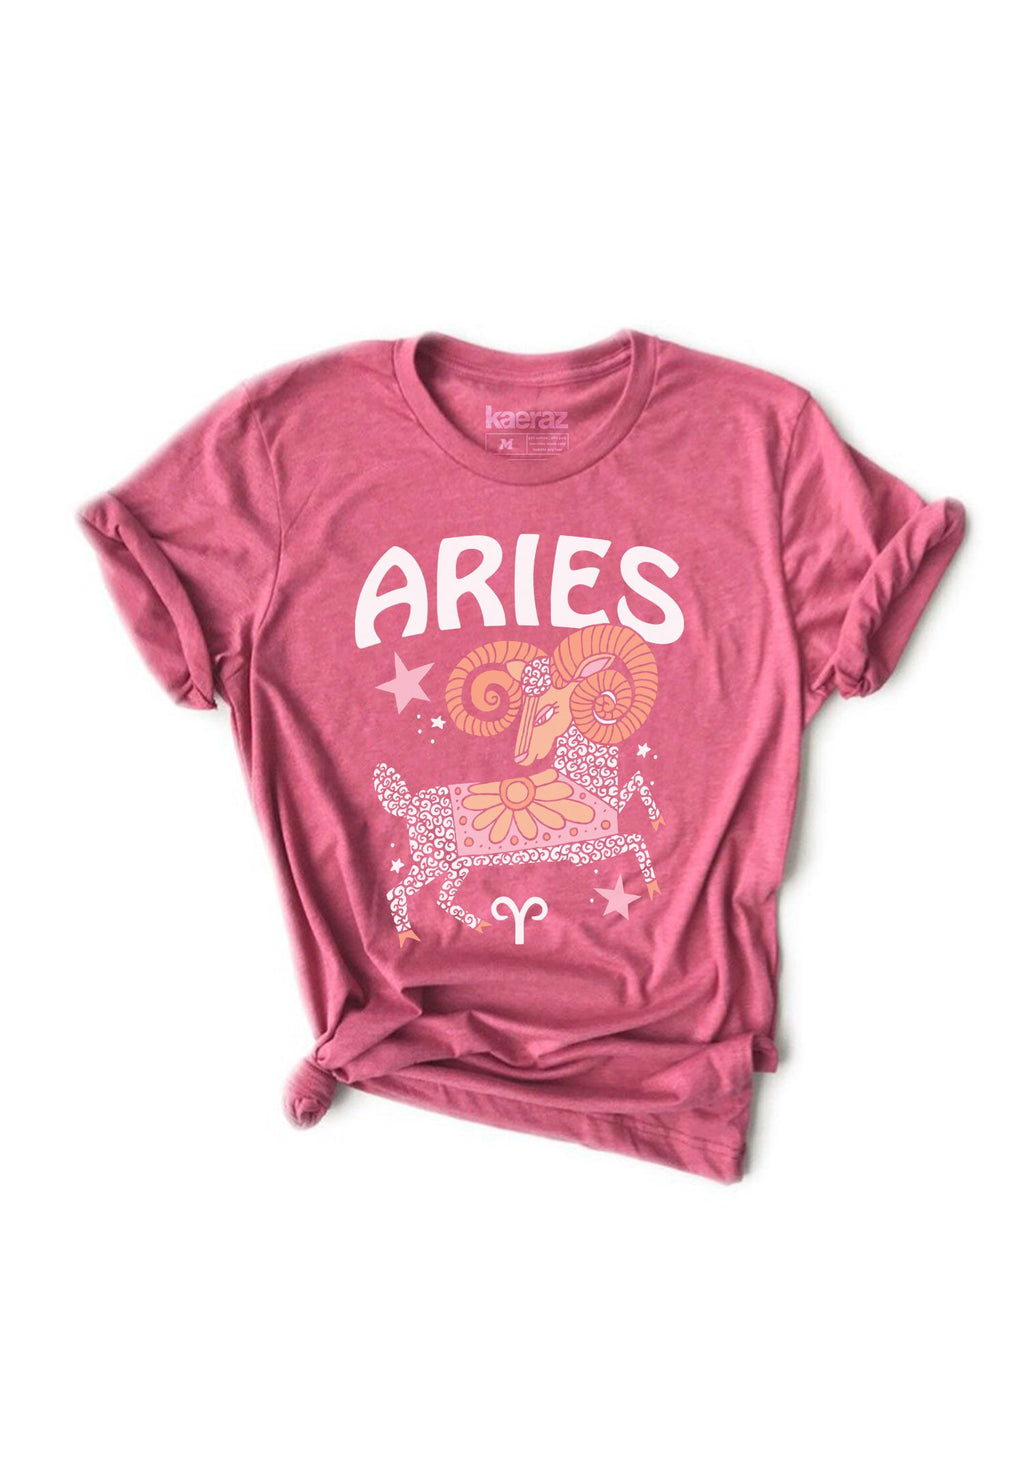 The Aries Tee / womens graphic tees / 60s 70s vintage style t shirt / zodiac horn ram astrology gifts tshirt / hippie gift shirts